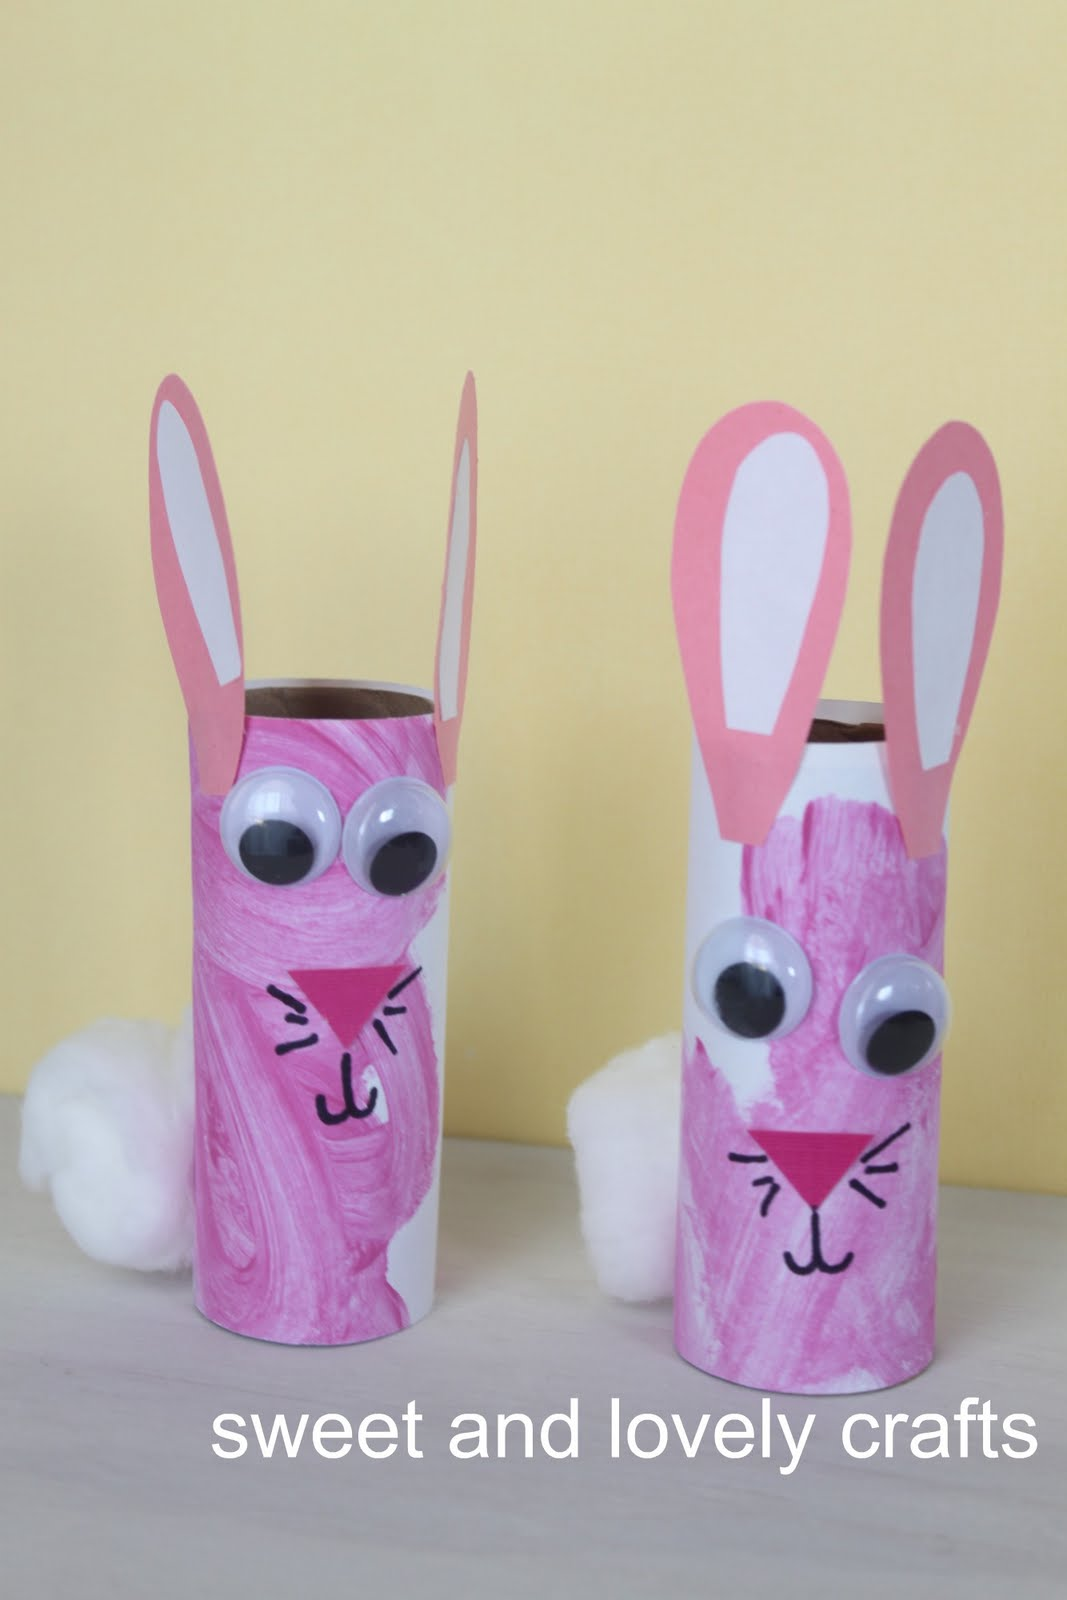 Sweet and lovely crafts toilet paper roll bunnies toilet paper roll bunnies jeuxipadfo Choice Image